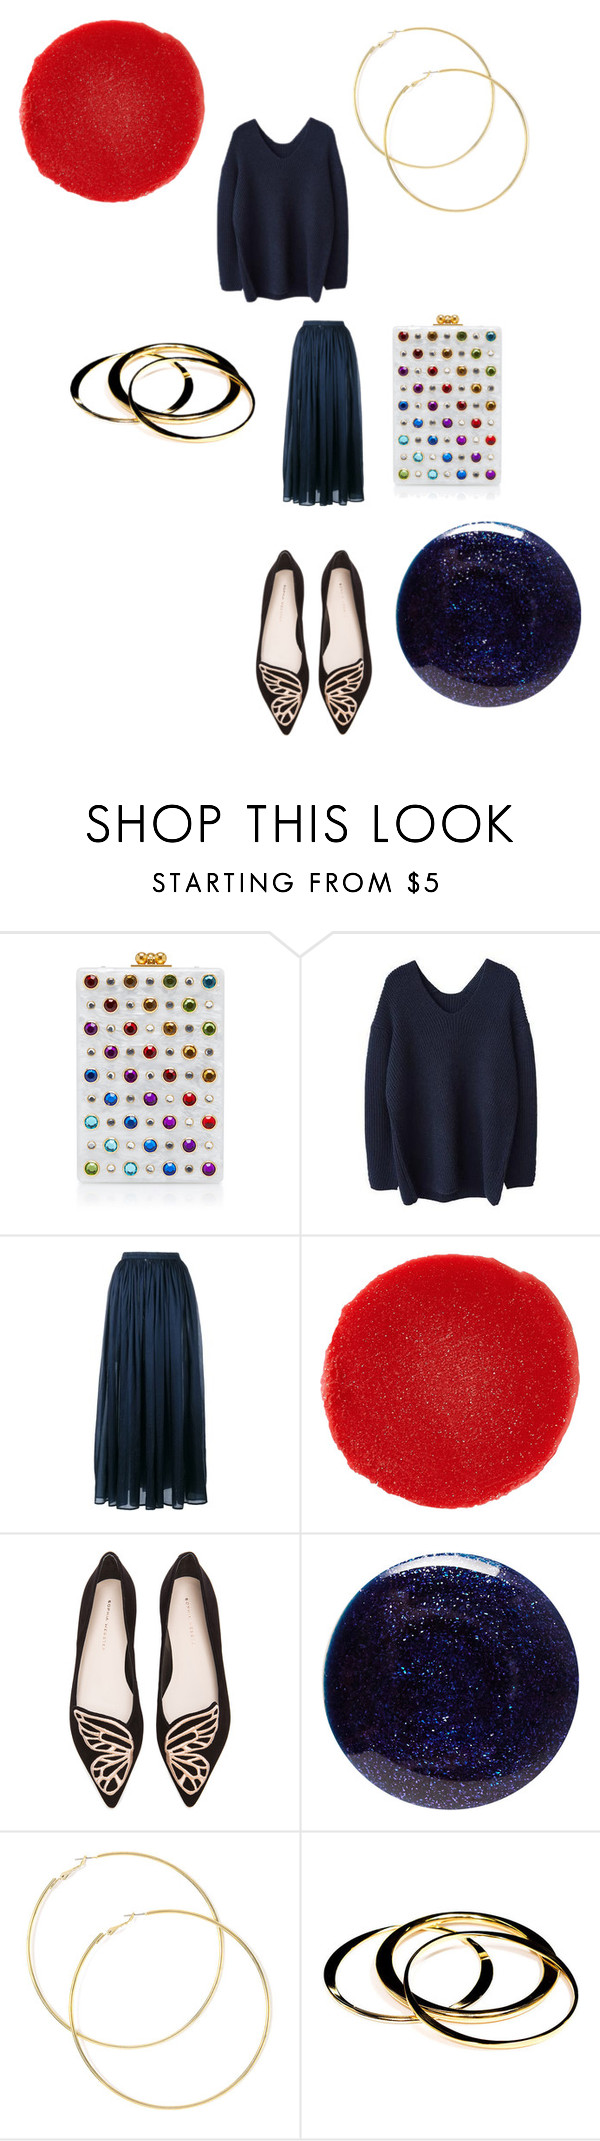 """""""A dash of color!"""" by alisafranklin on Polyvore featuring Edie Parker, Mes Demoiselles..., Christian Louboutin, Sophia Webster, Lauren B. Beauty and Janna Conner"""